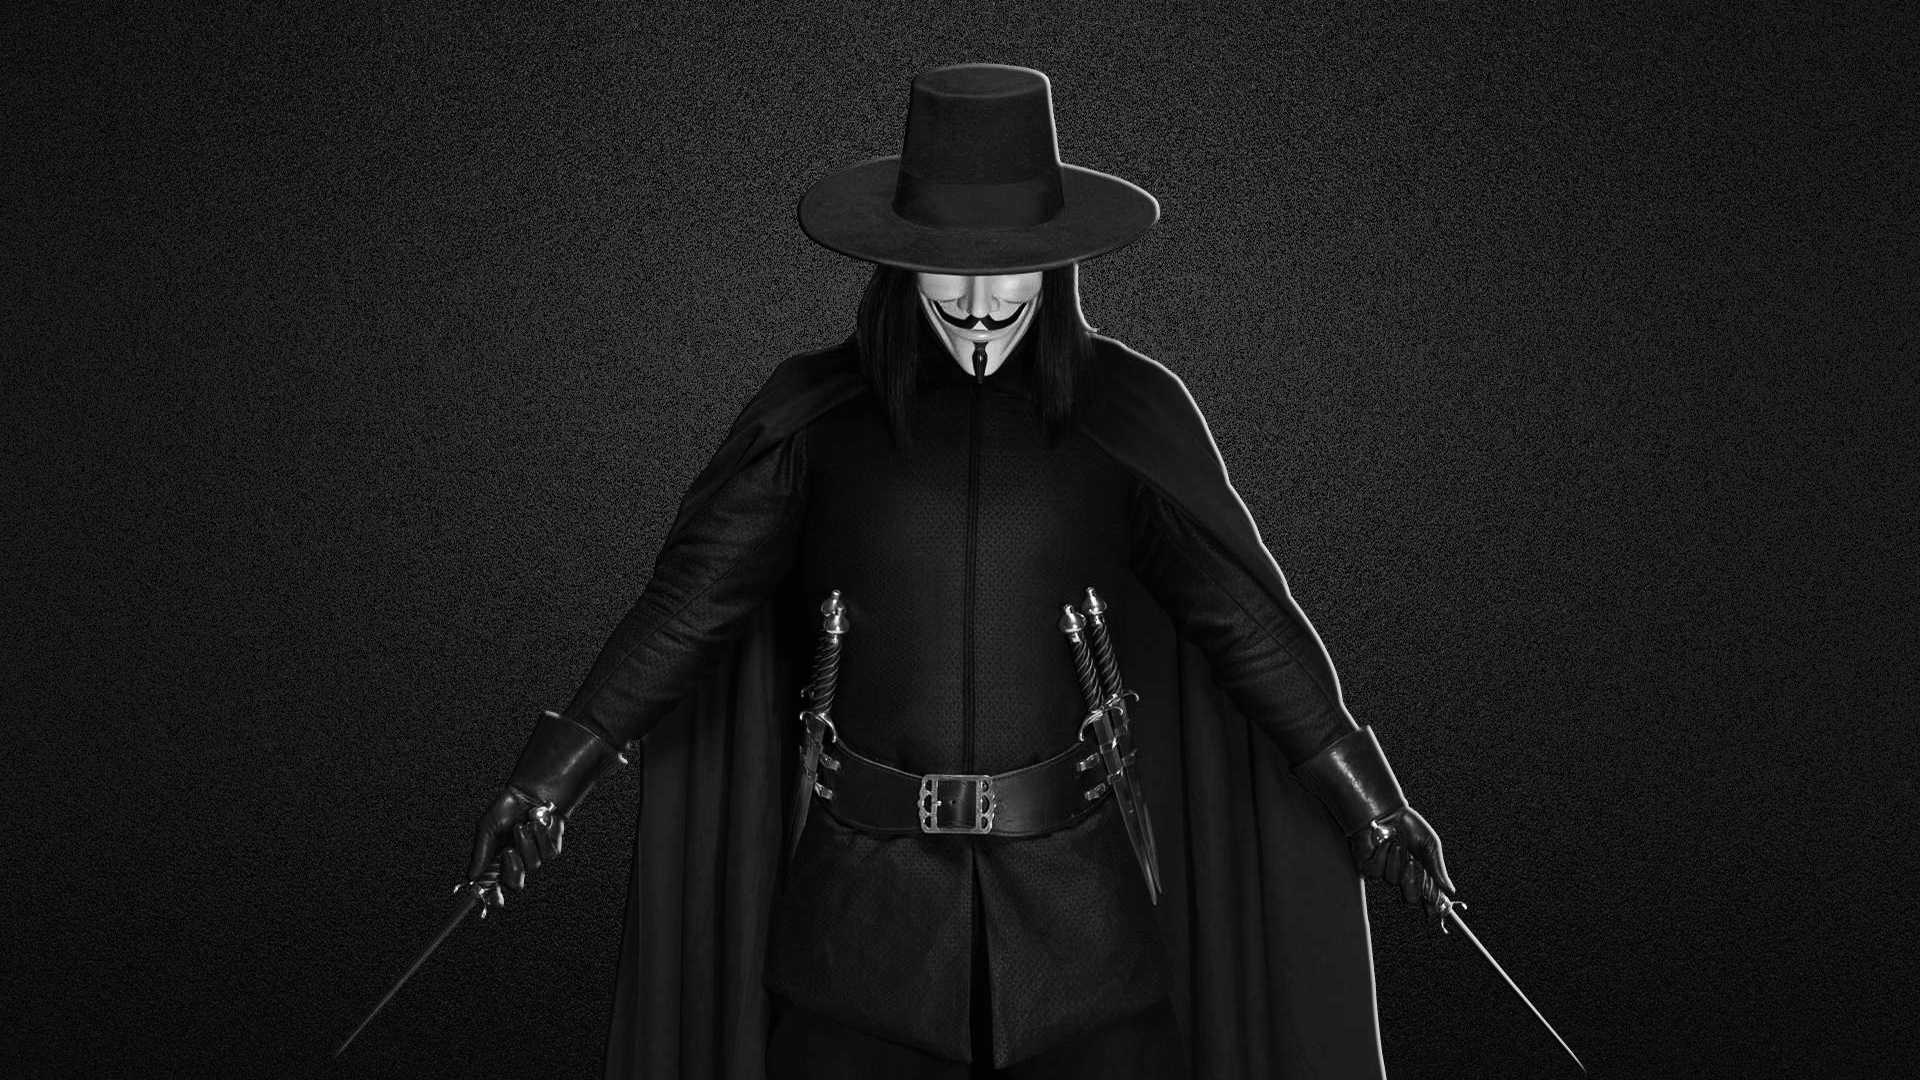 video v for vendetta torrent